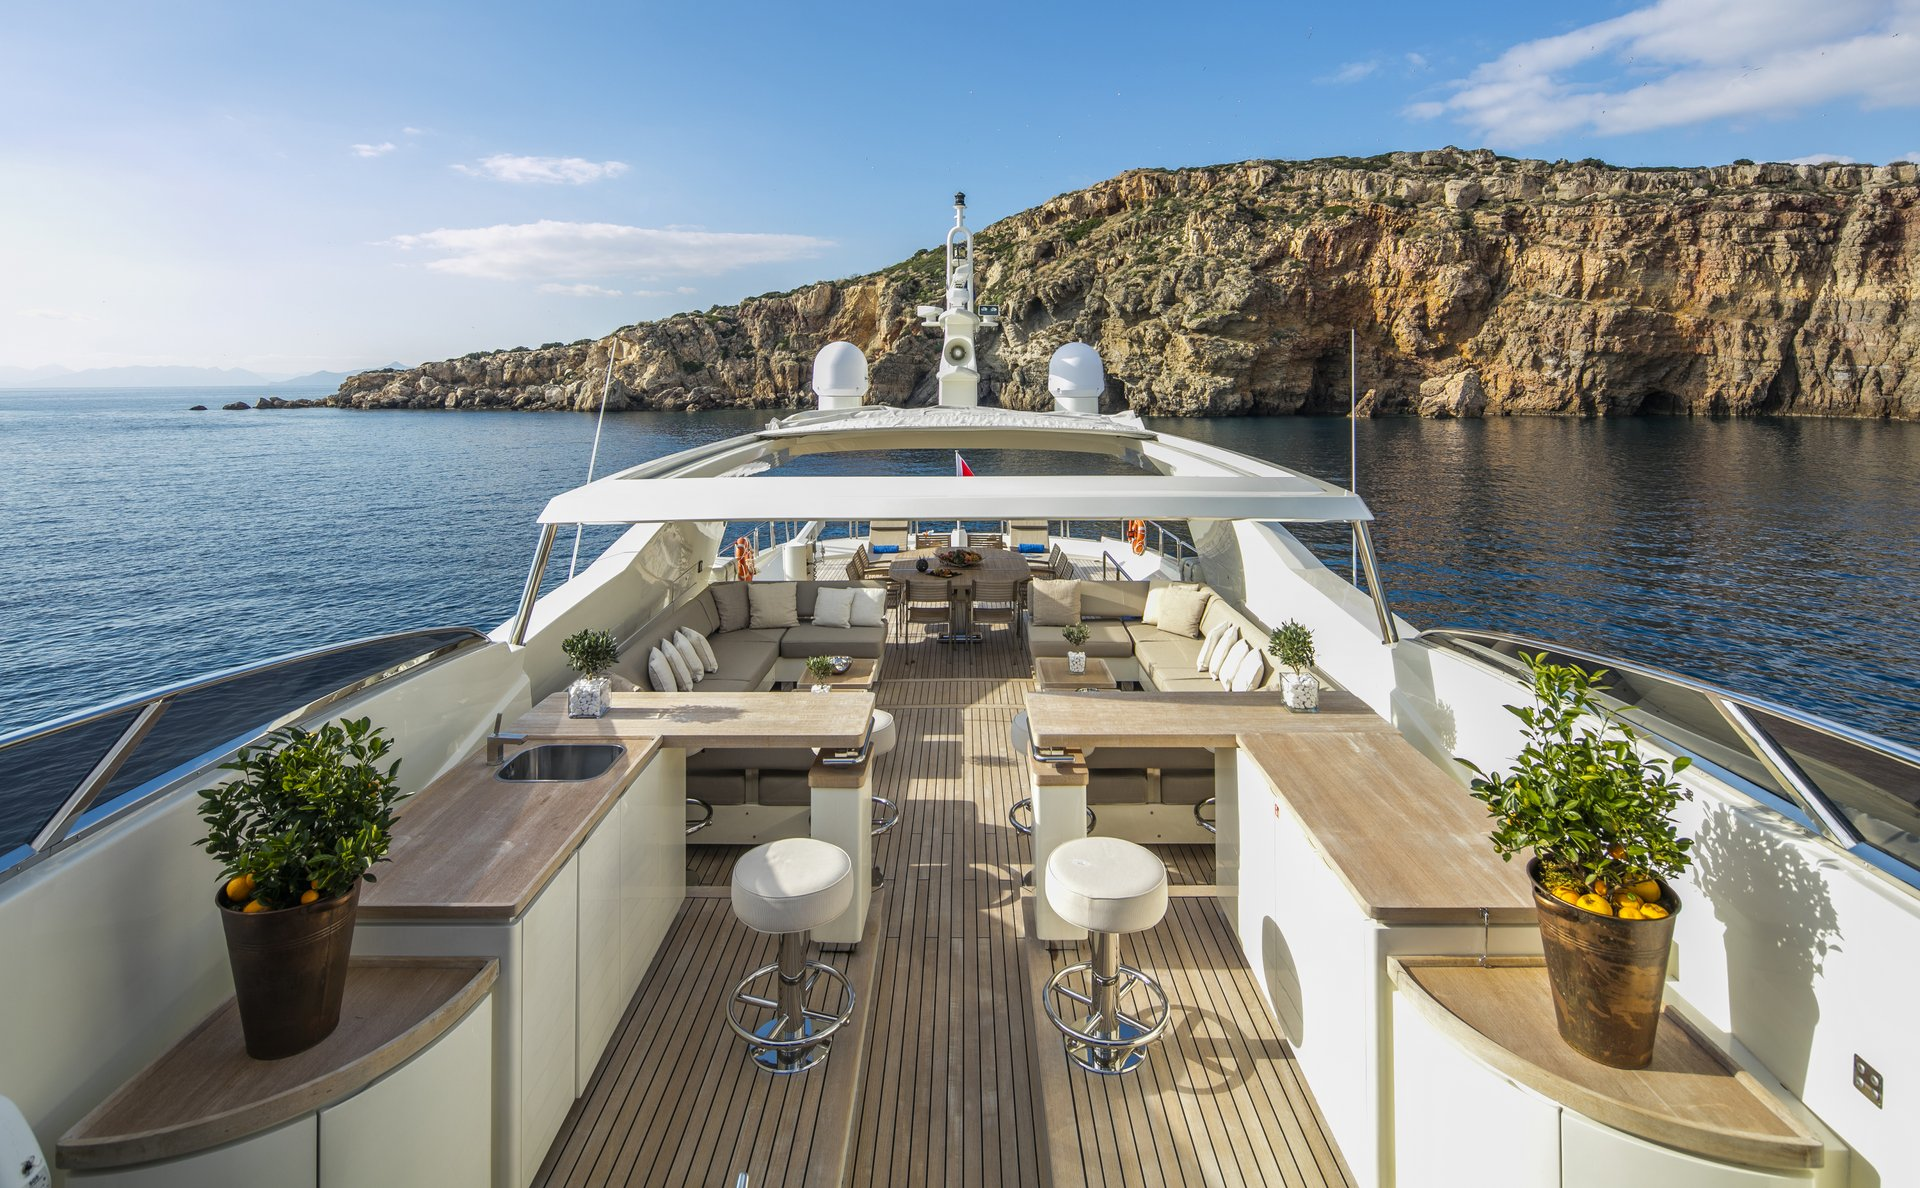 M/Y RINI yacht for charter deck entertainment